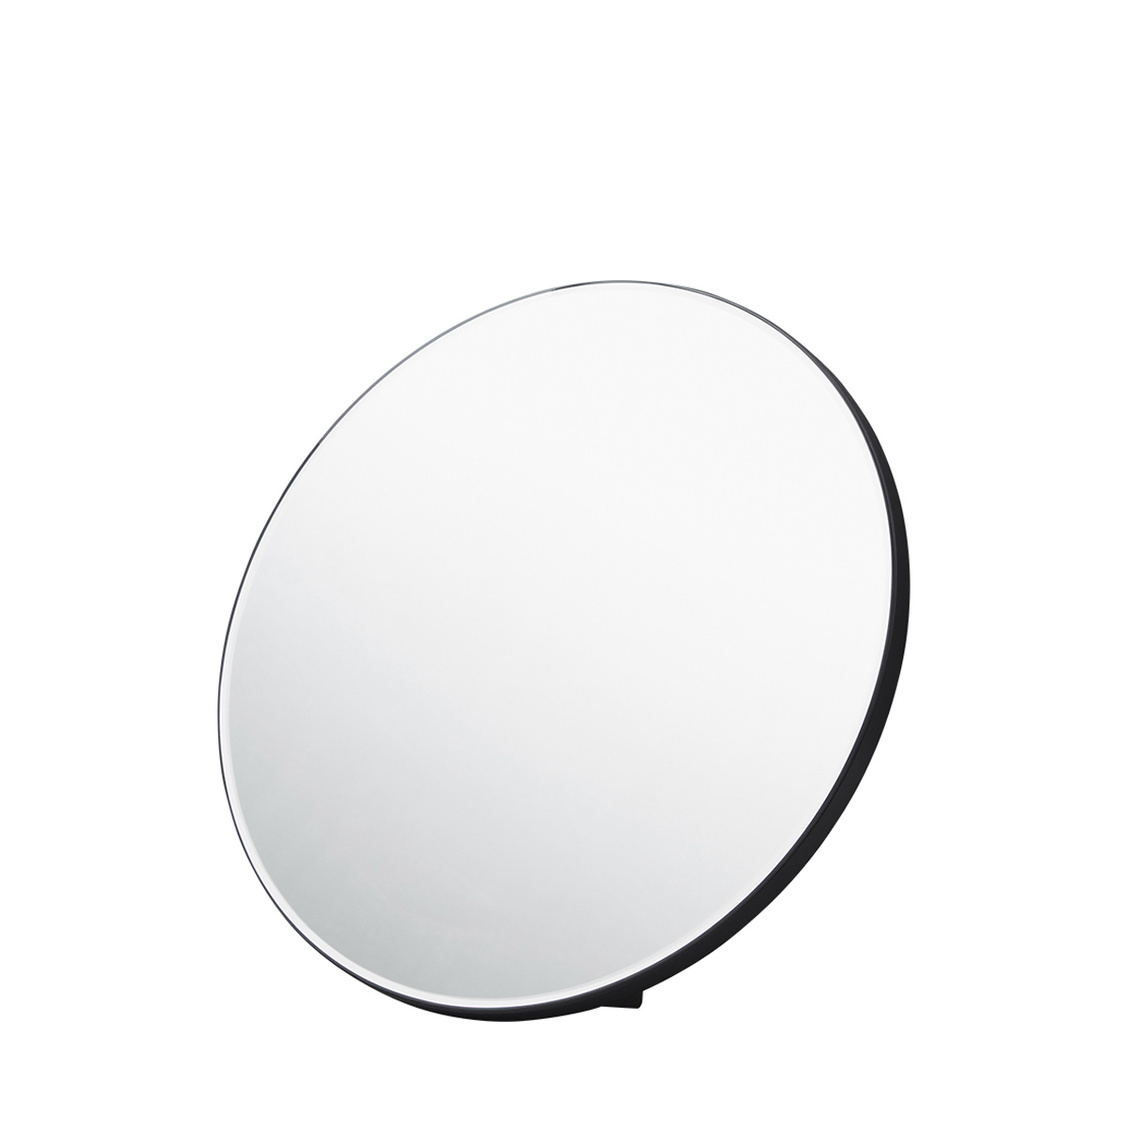 GLEN STUDIO Round Wooden Mirror HSPA104-FK